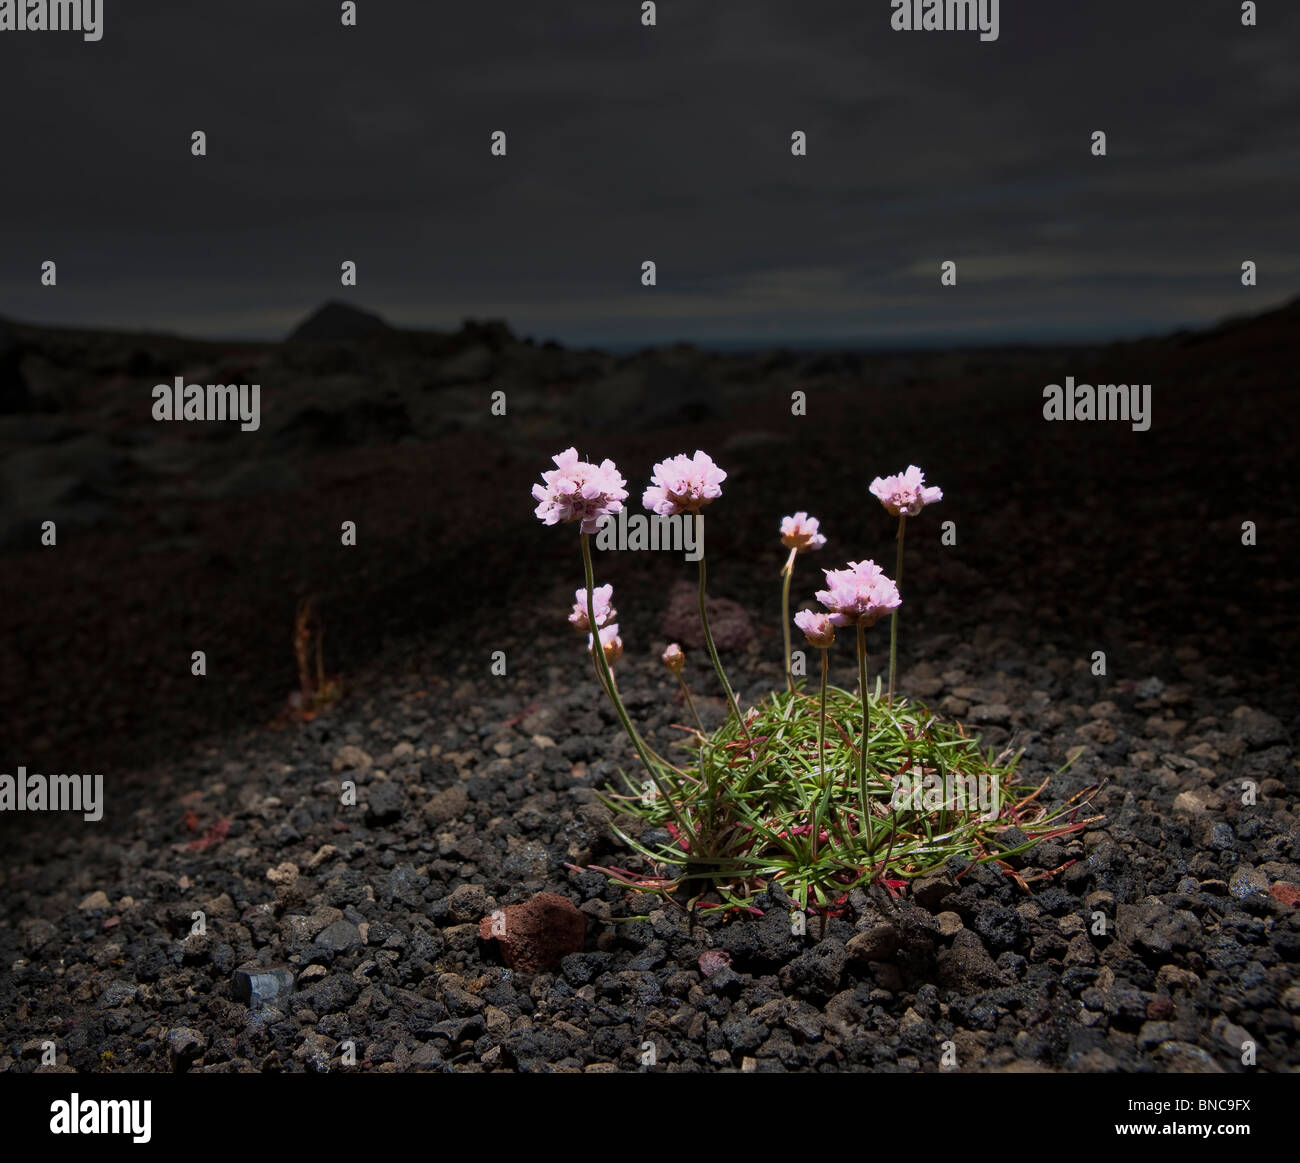 Pink wildflowers growing in black sands and lava, Iceland - Stock Image